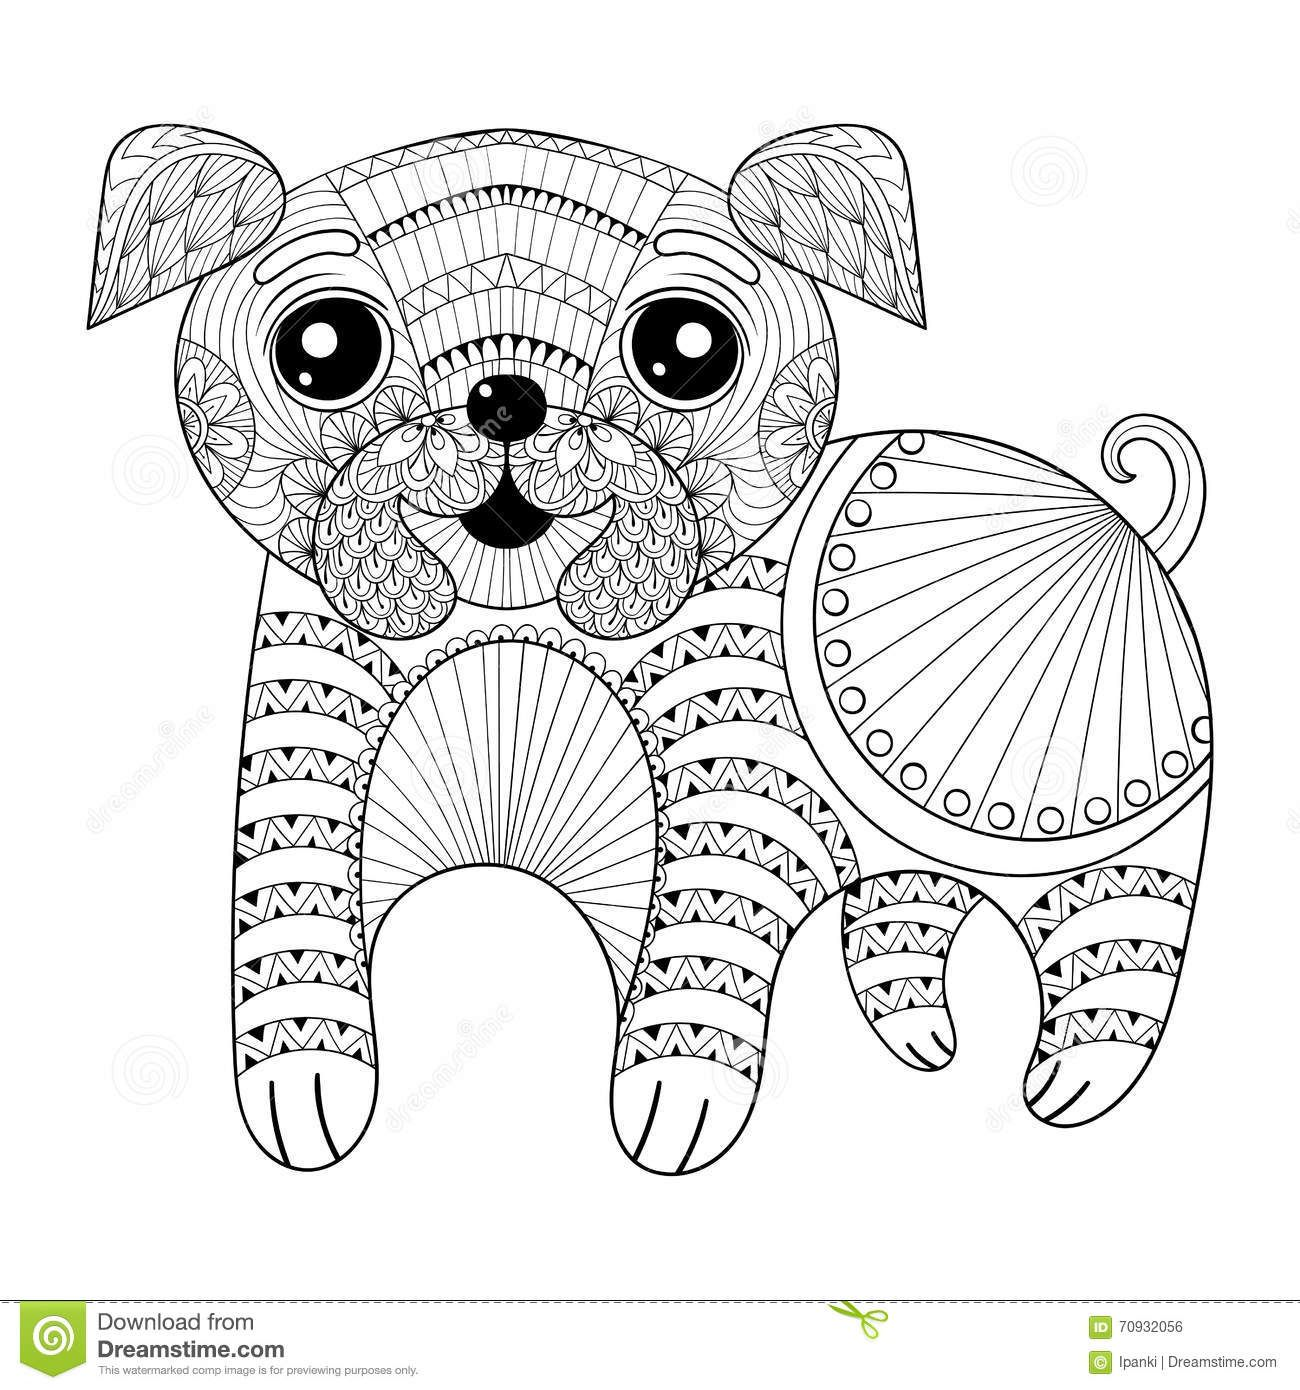 dog zentangle coloring pages zentangle dog colouring page animal colouring zentangle zentangle coloring pages dog